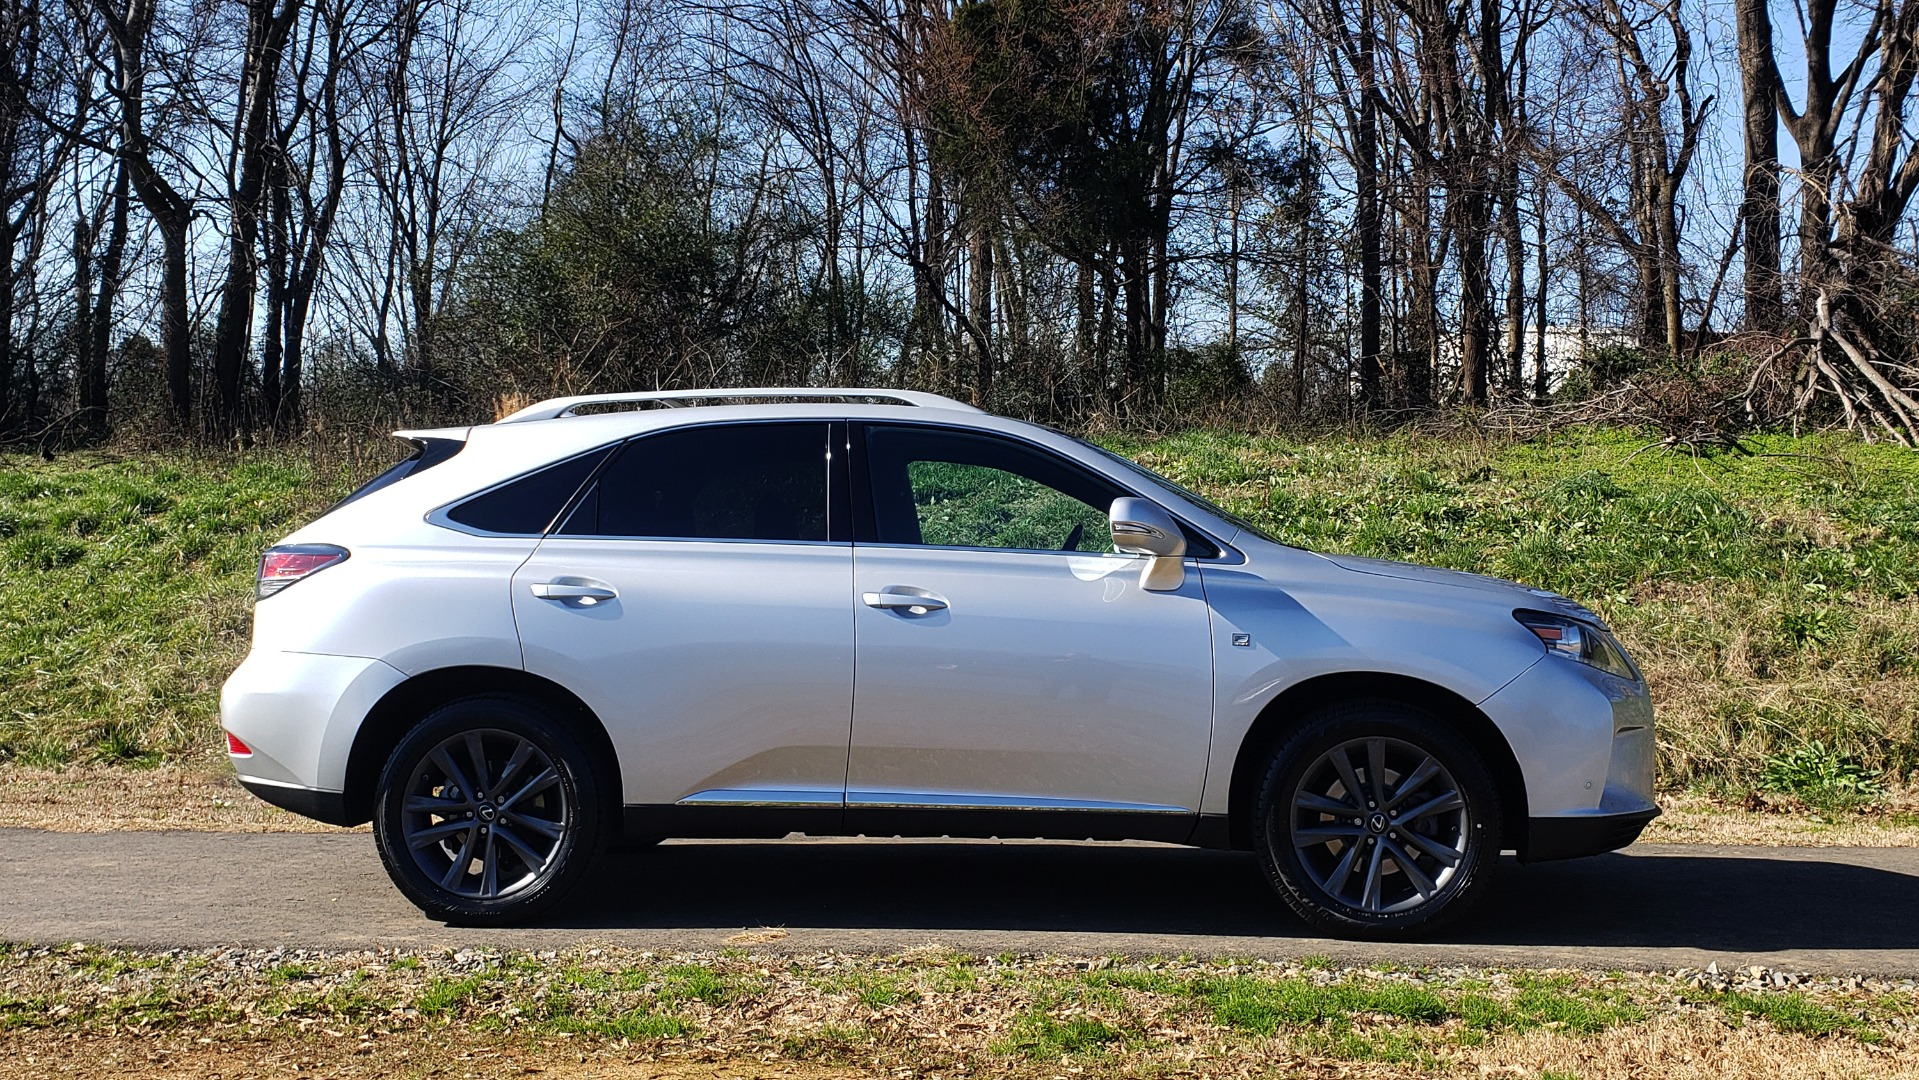 Used 2015 Lexus RX350 AWD F-SPORT / NAV / SUNROOF / BSM / PARK ASST / REARVIEW for sale Sold at Formula Imports in Charlotte NC 28227 5